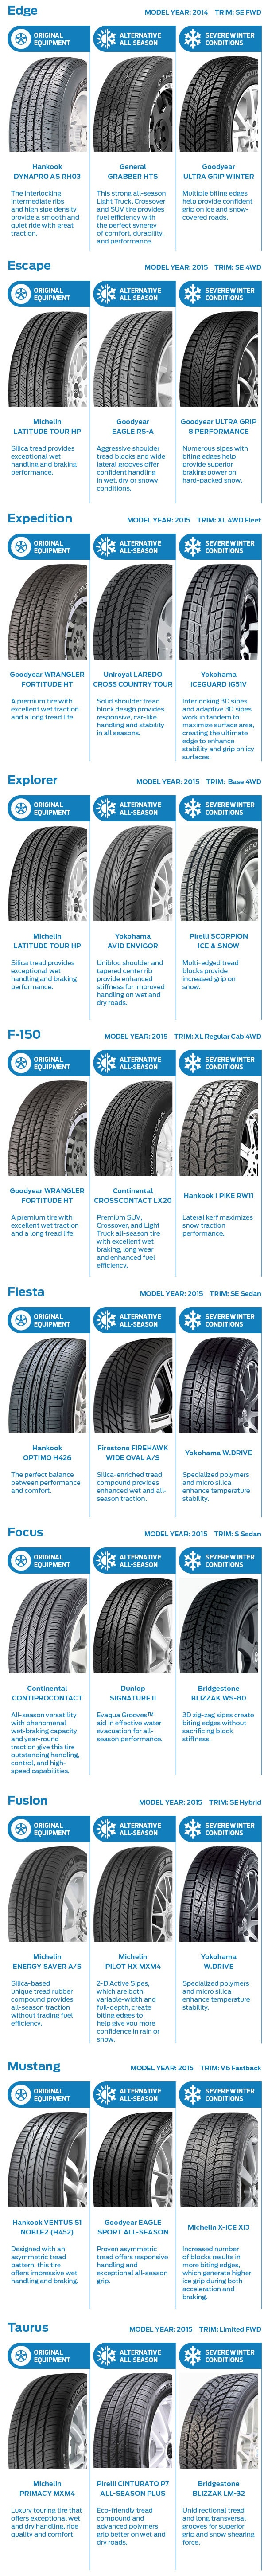 Best All Weather Tires For Your Ford Car Or Suv Duluth